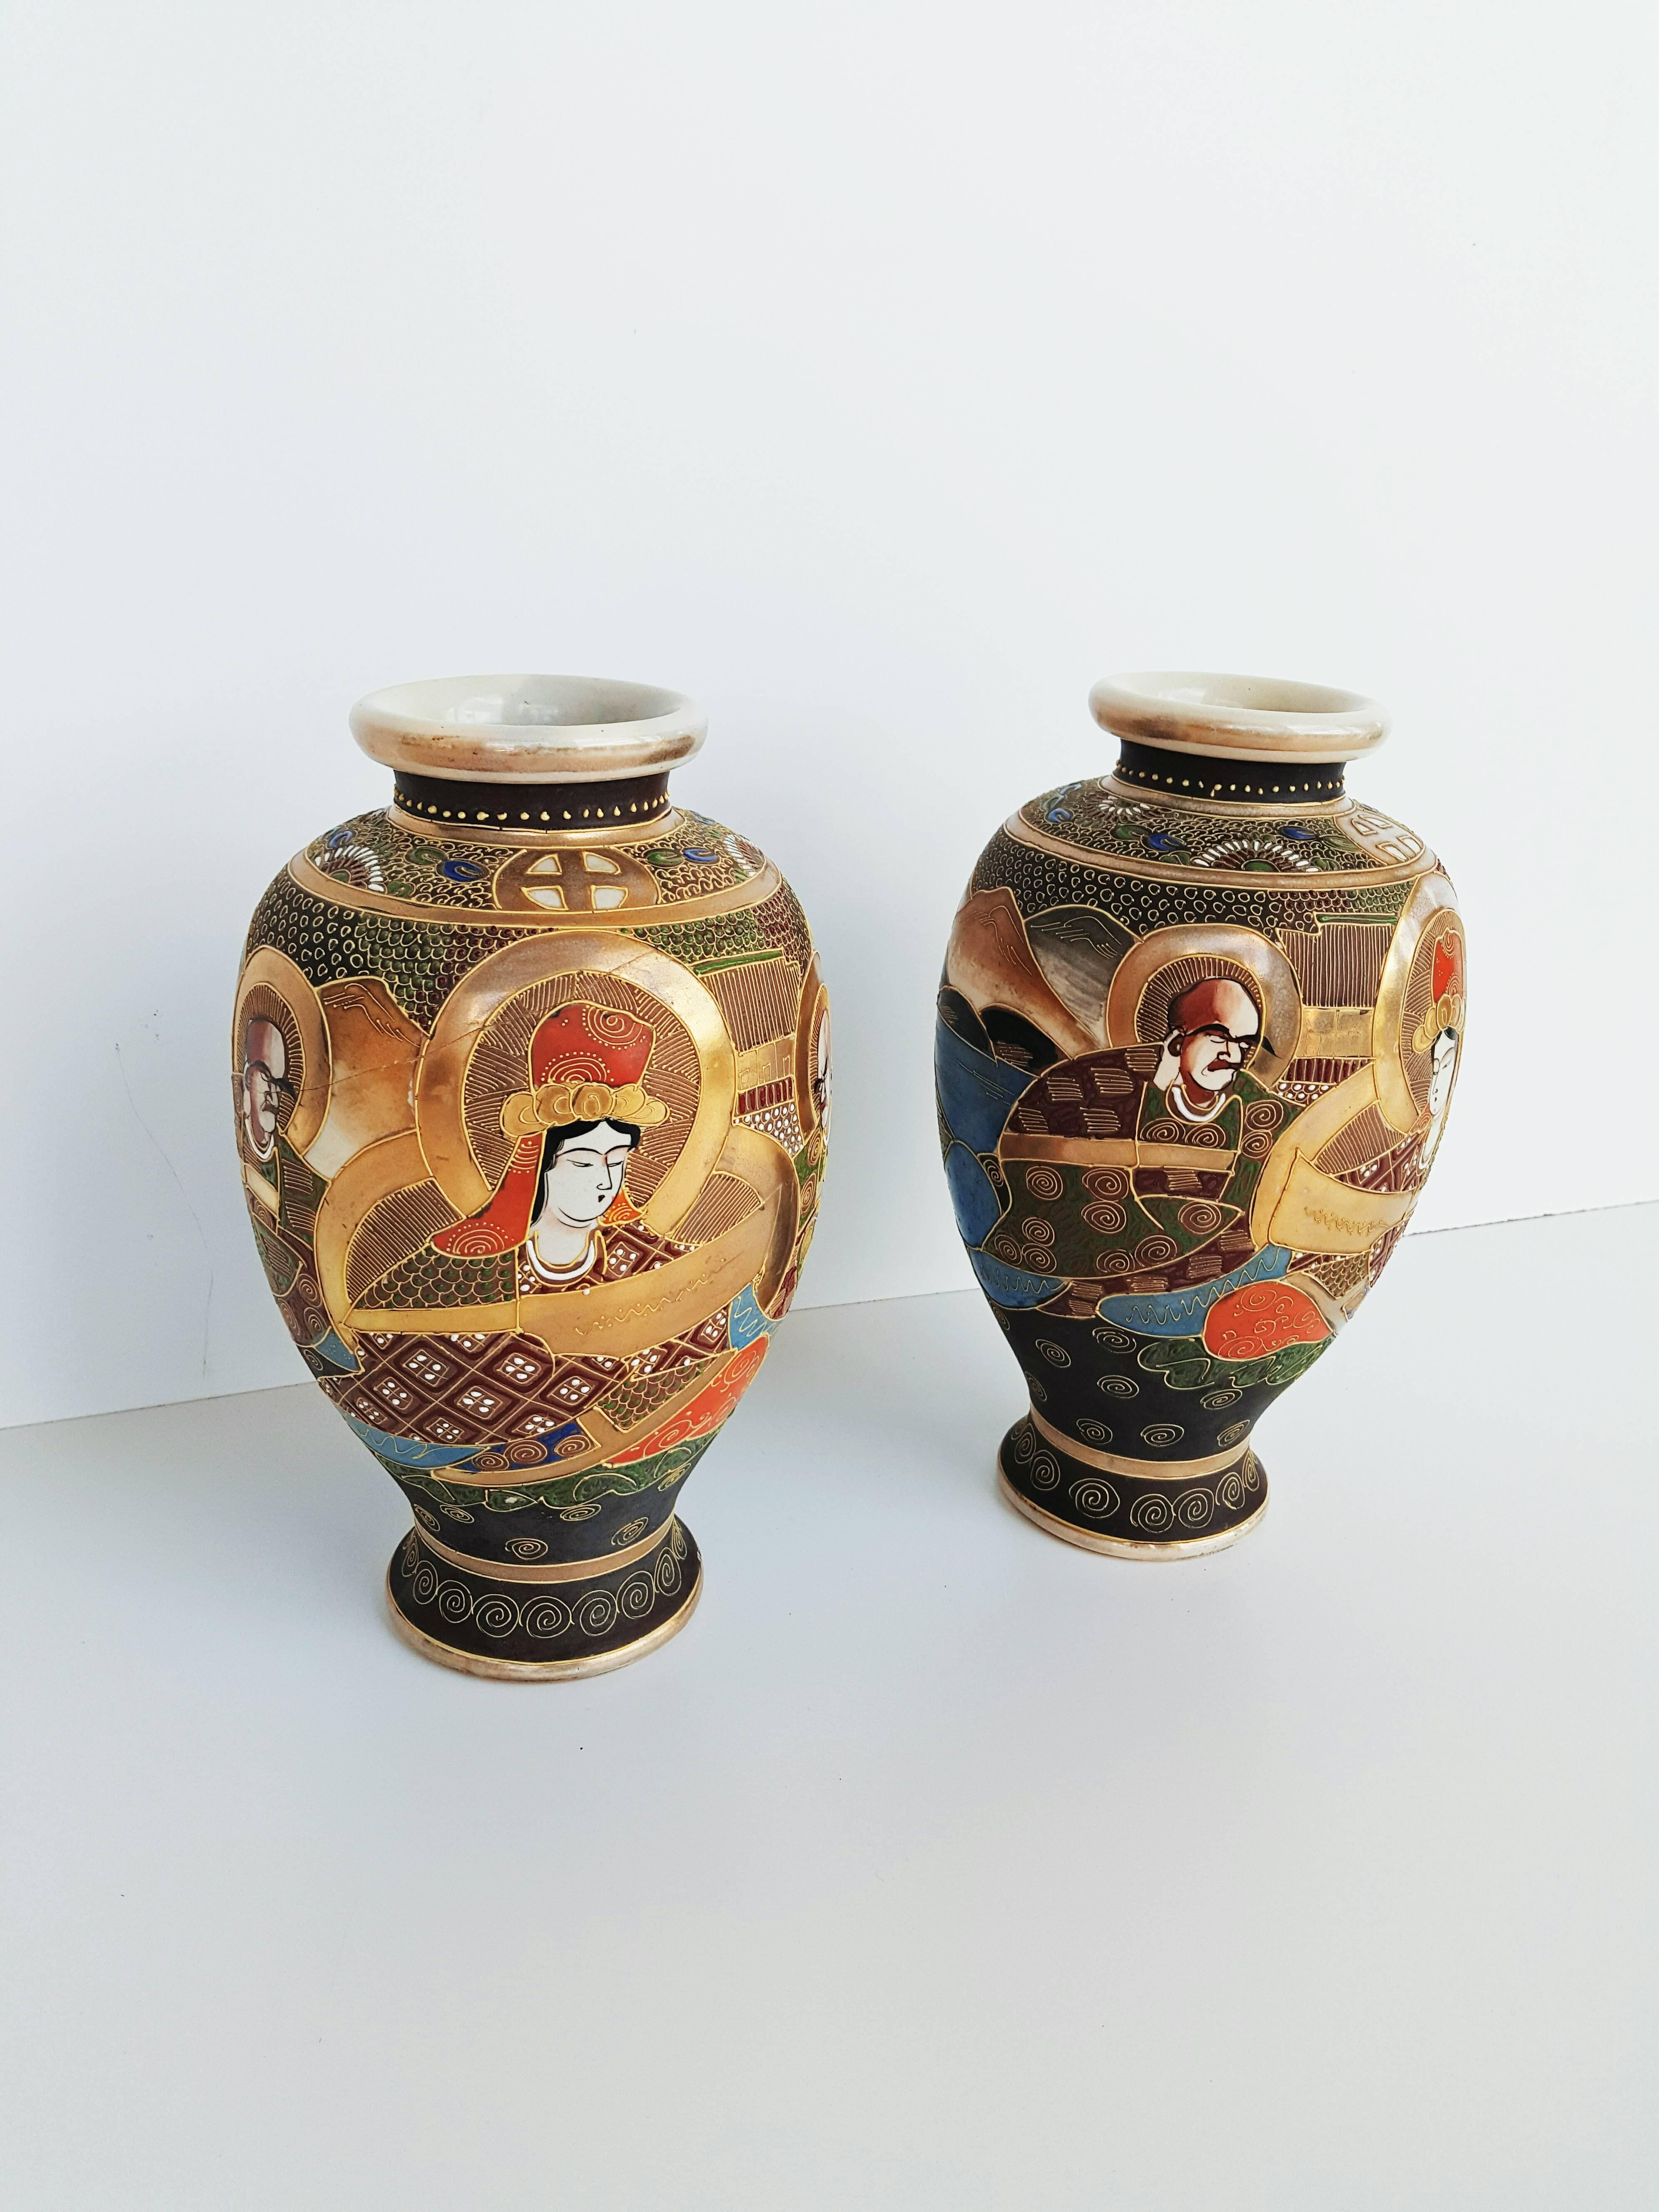 chinese rosewood vase stands of early 20th century pair of japanese satsuma vases in painted ceramic with regard to early 20th century pair of japanese satsuma vases in painted ceramic for sale at 1stdibs